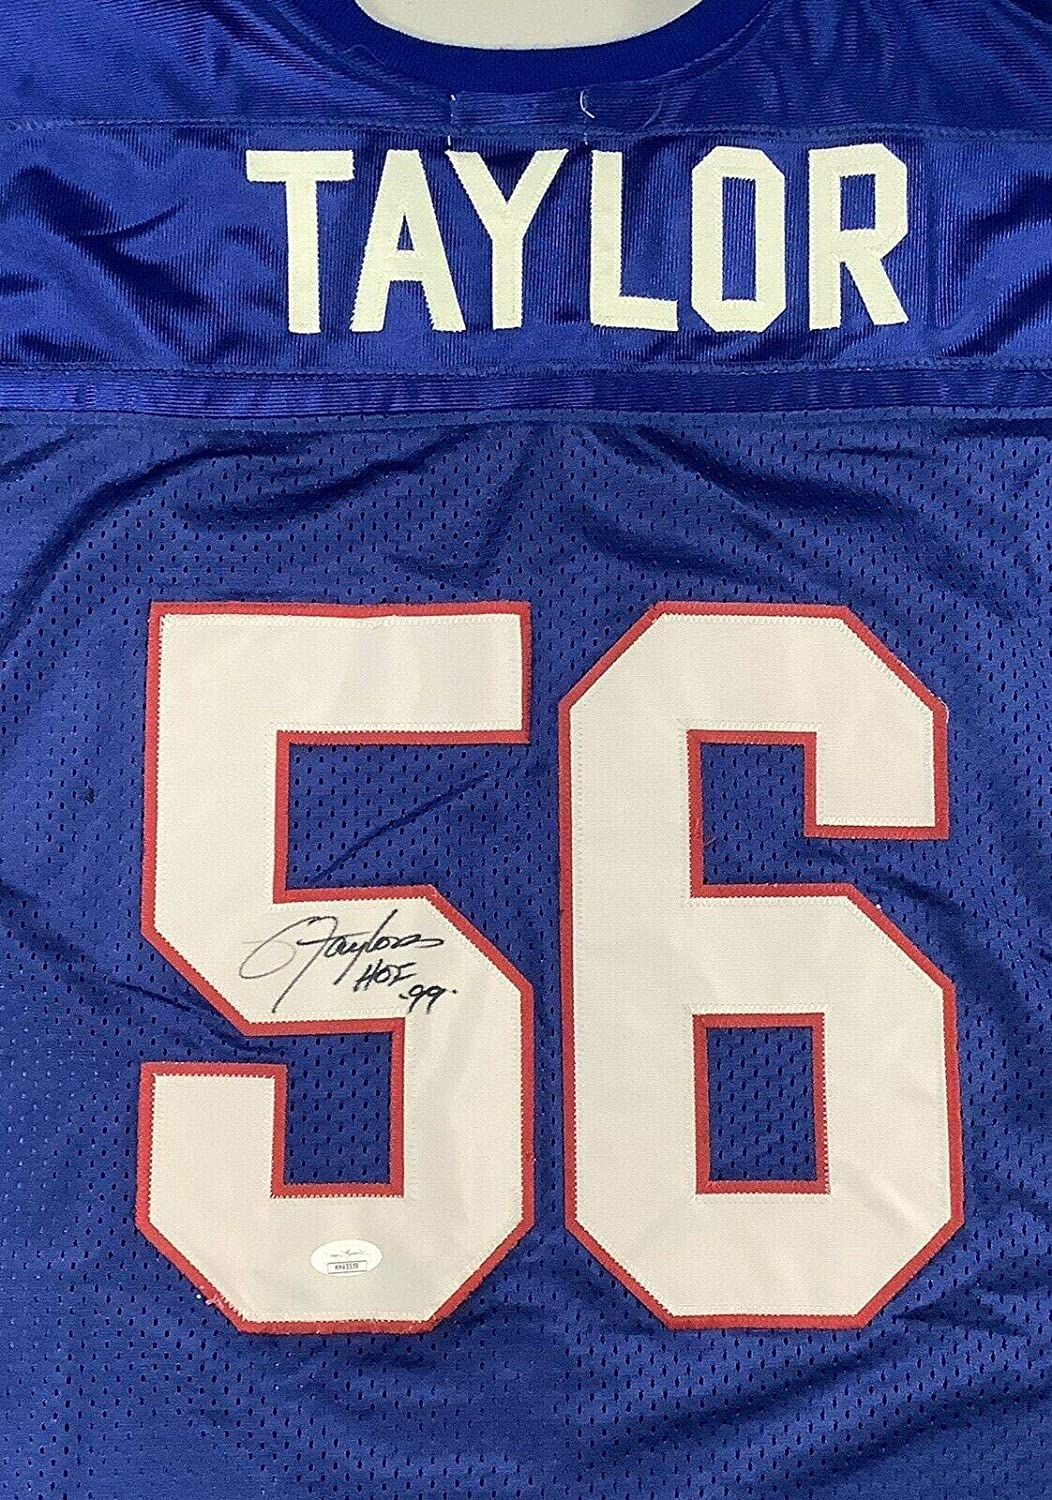 Lawrence Taylor Signed Jersey Authentic HOF 99 Autograph Giants Throwback - JSA Certified - Autographed NFL Jerseys